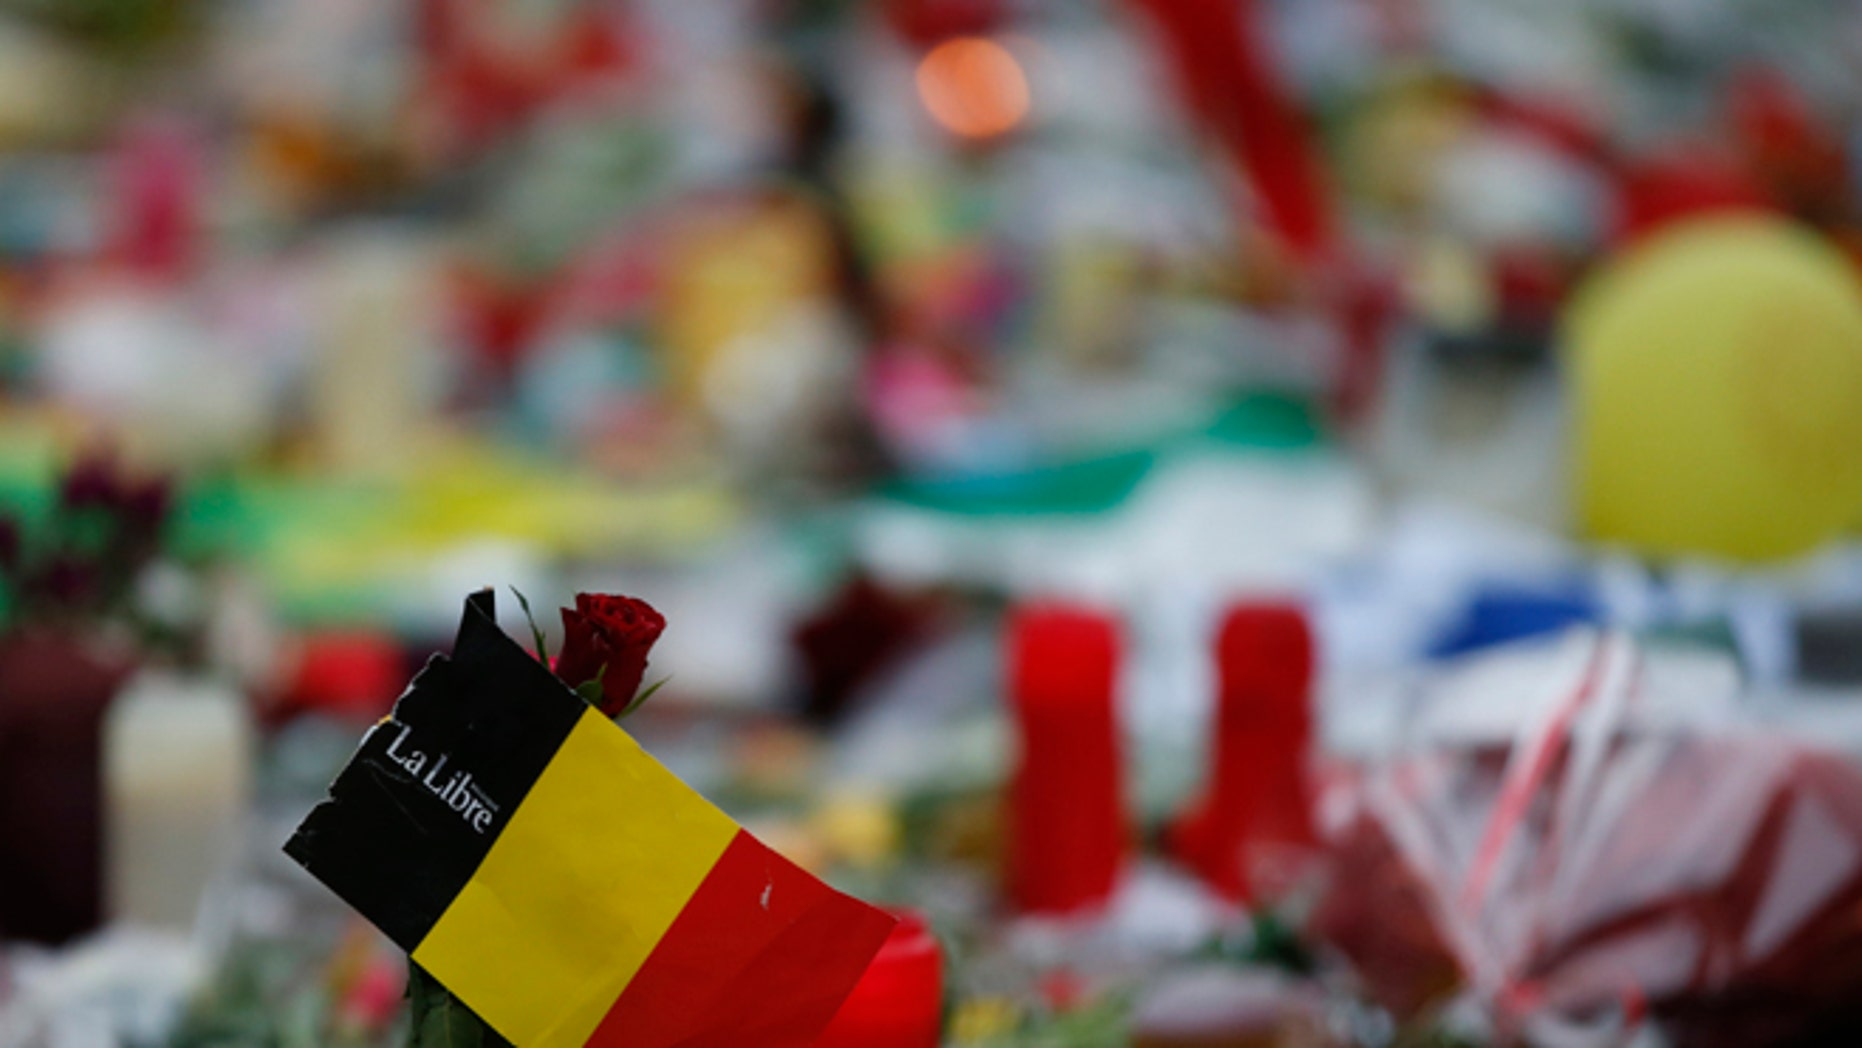 """A red rose and the national flag of Belgium amongst the tributes to the victims of the recent attacks in Brussels, placed in the Place de la Bourse in the centre of Brussels, Thursday, March, 24, 2016. Belgium's prime minister is promising to do everything to determine who was responsible for deadly attacks targeting the Brussels airport and subway system. Charles Michel, in a national mourning speech Thursday, said Tuesday's attacks on the European Union's capital targeted the """"liberty of daily life"""" and """"the liberty upon which the European project was built.""""(AP Photo/Alastair Grant)"""